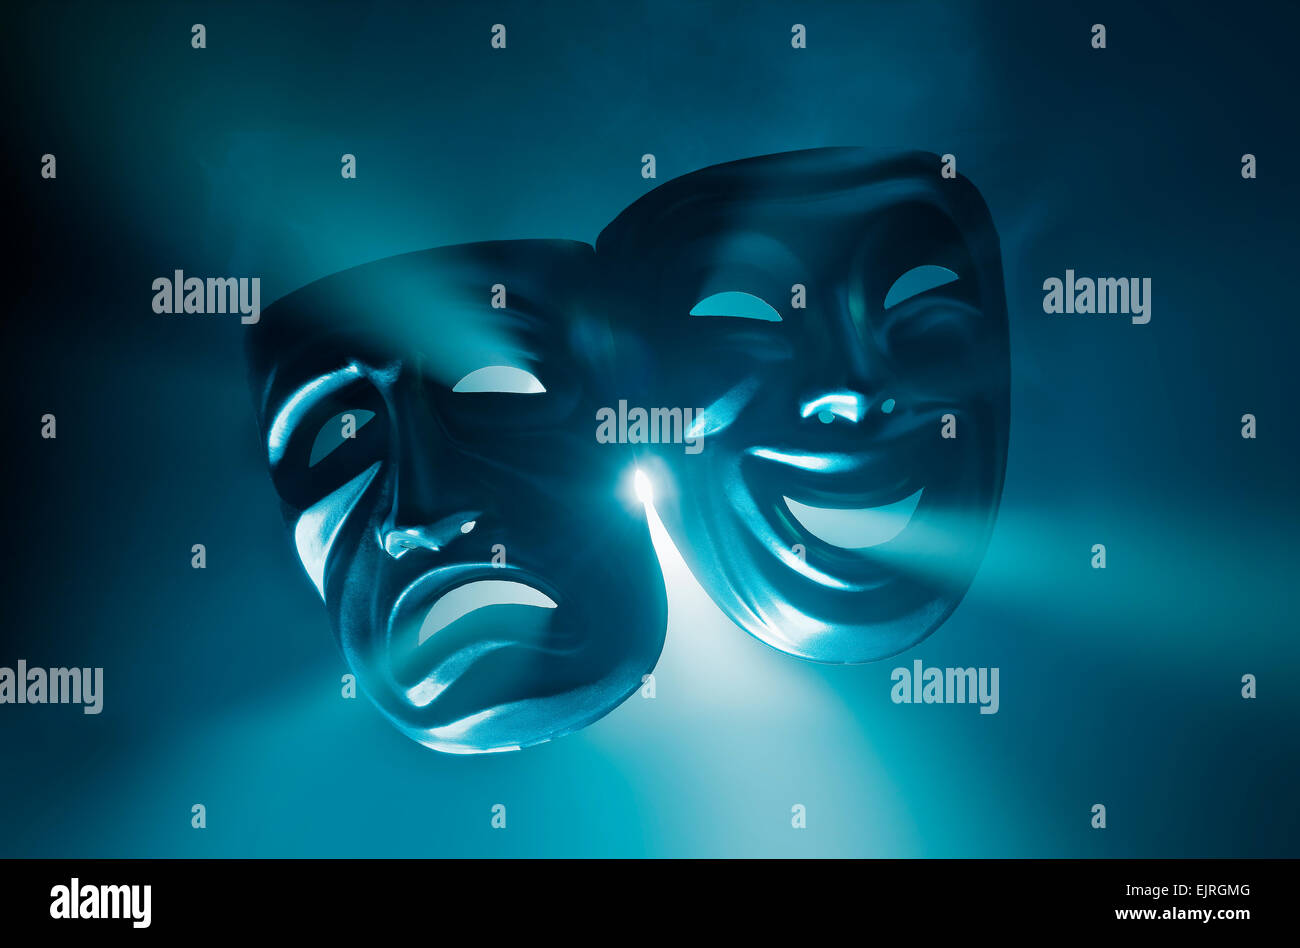 Crying and smiling masks in hazy light. - Stock Image